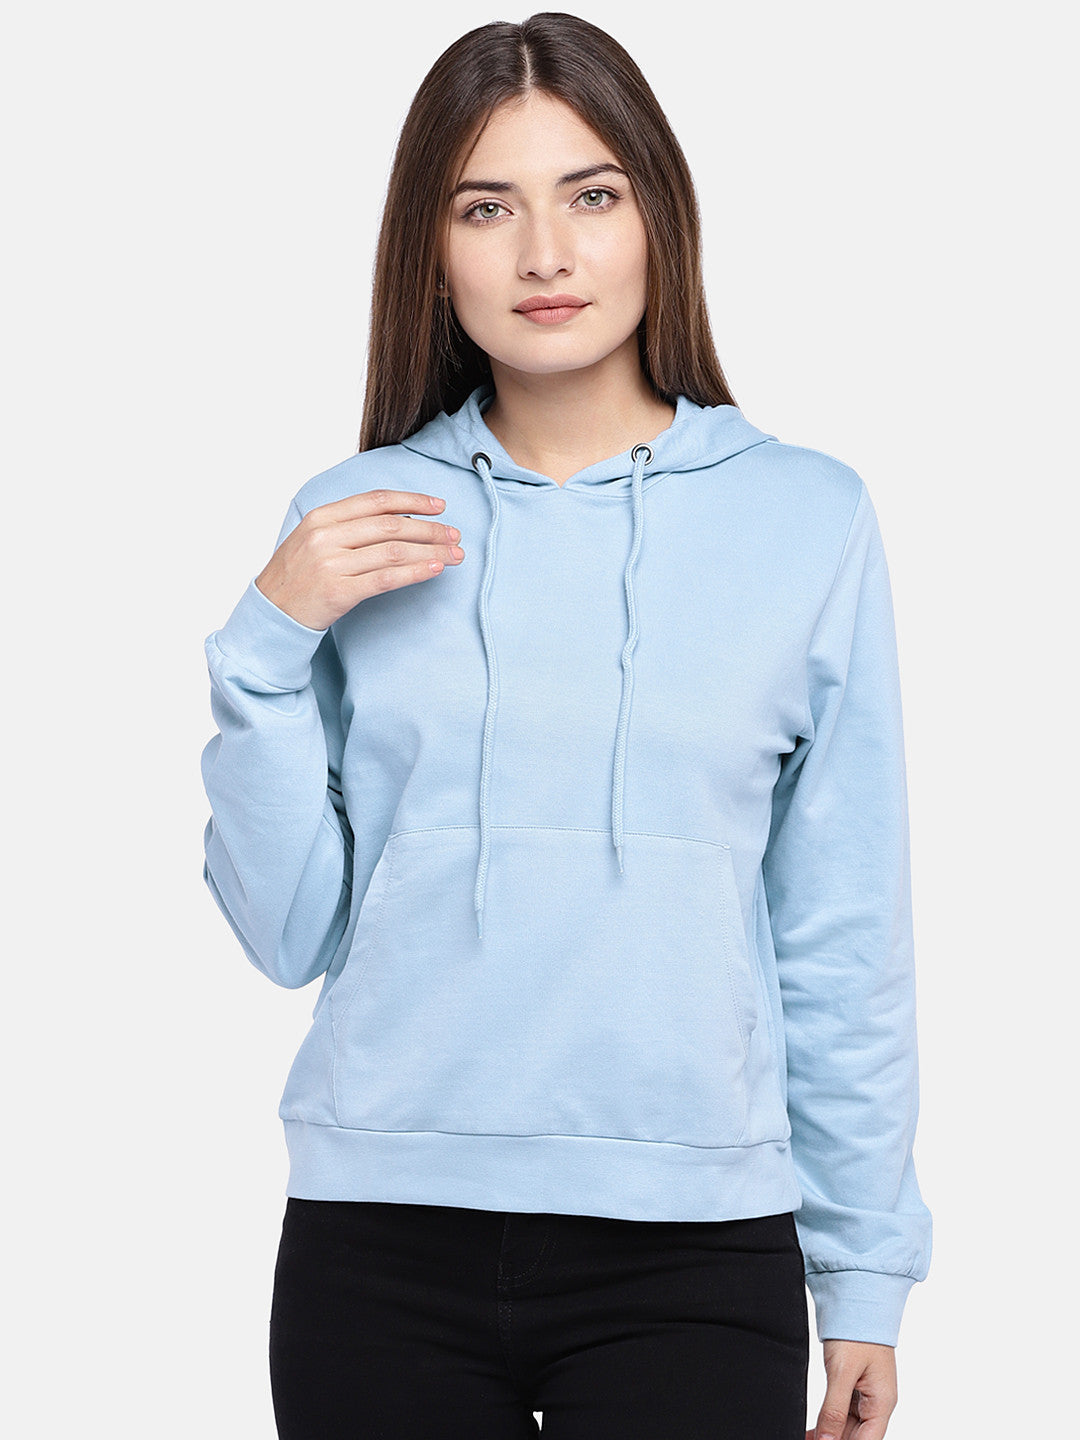 Blue Solid Hooded Sweatshirt-1